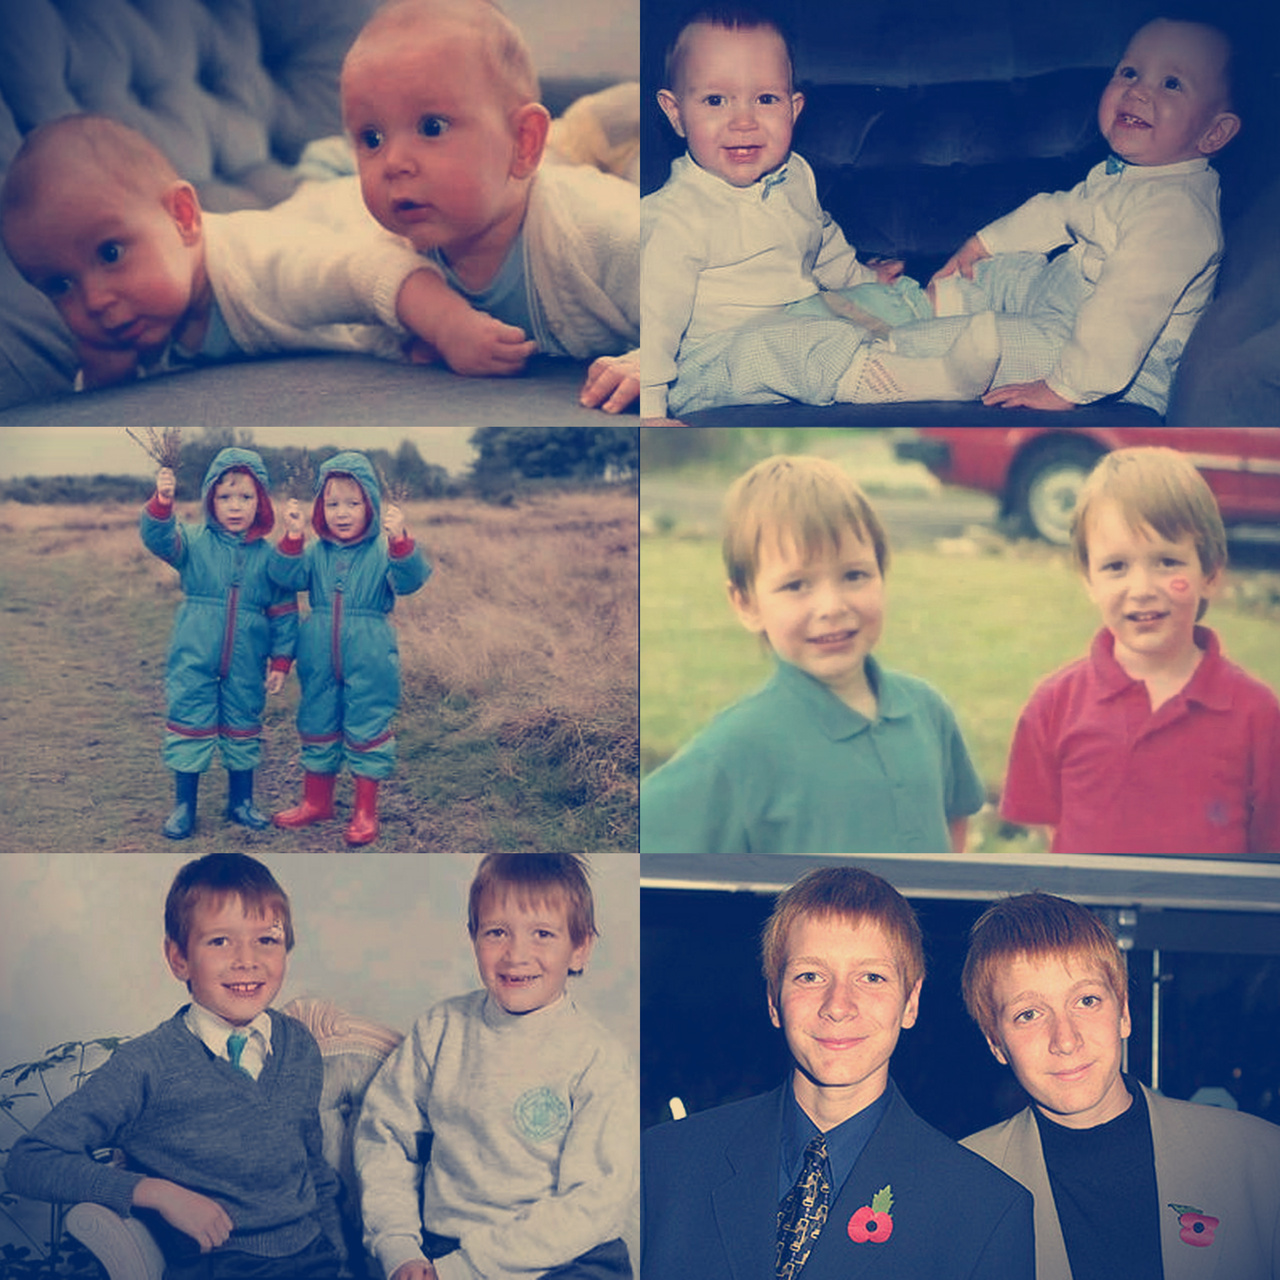 james and oliver phelps young - photo #4